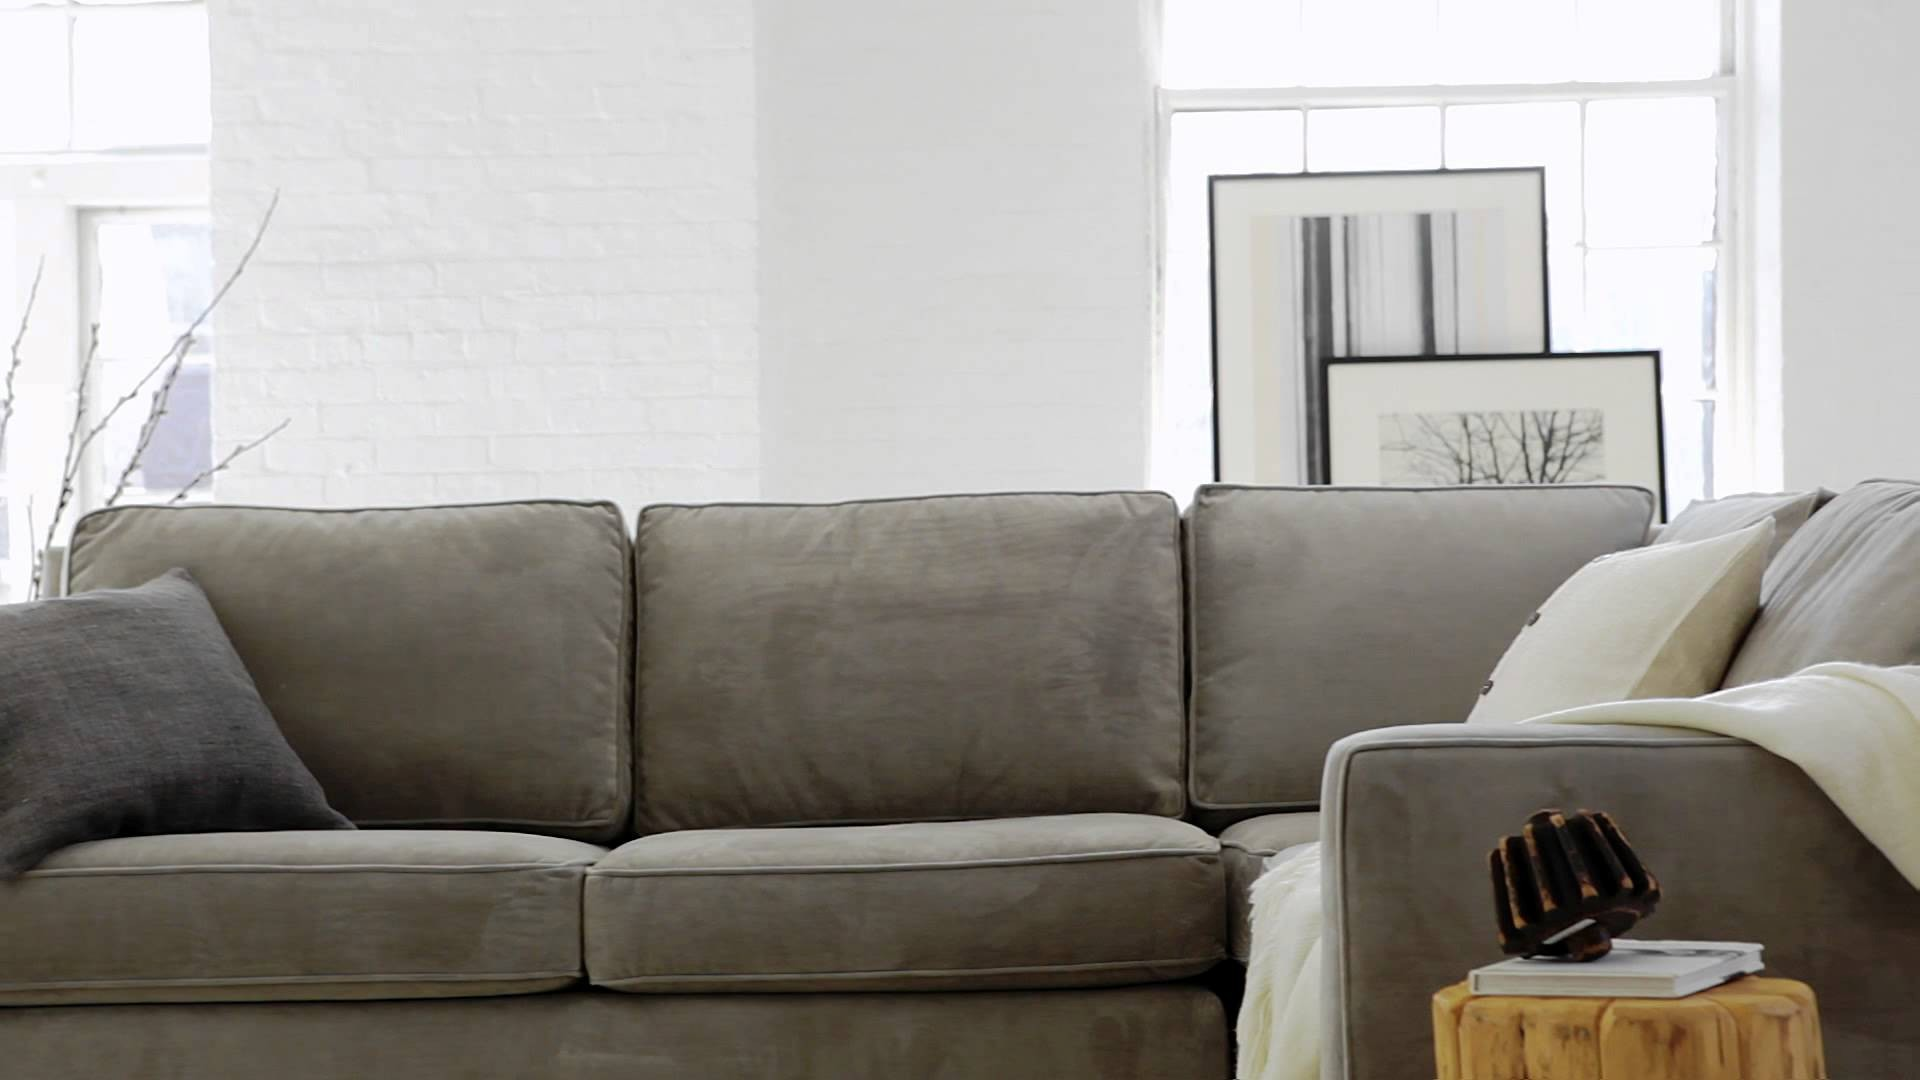 West Elm sofa Inspirational the Henry Collection Classic Contemporary Living Room Furniture Construction